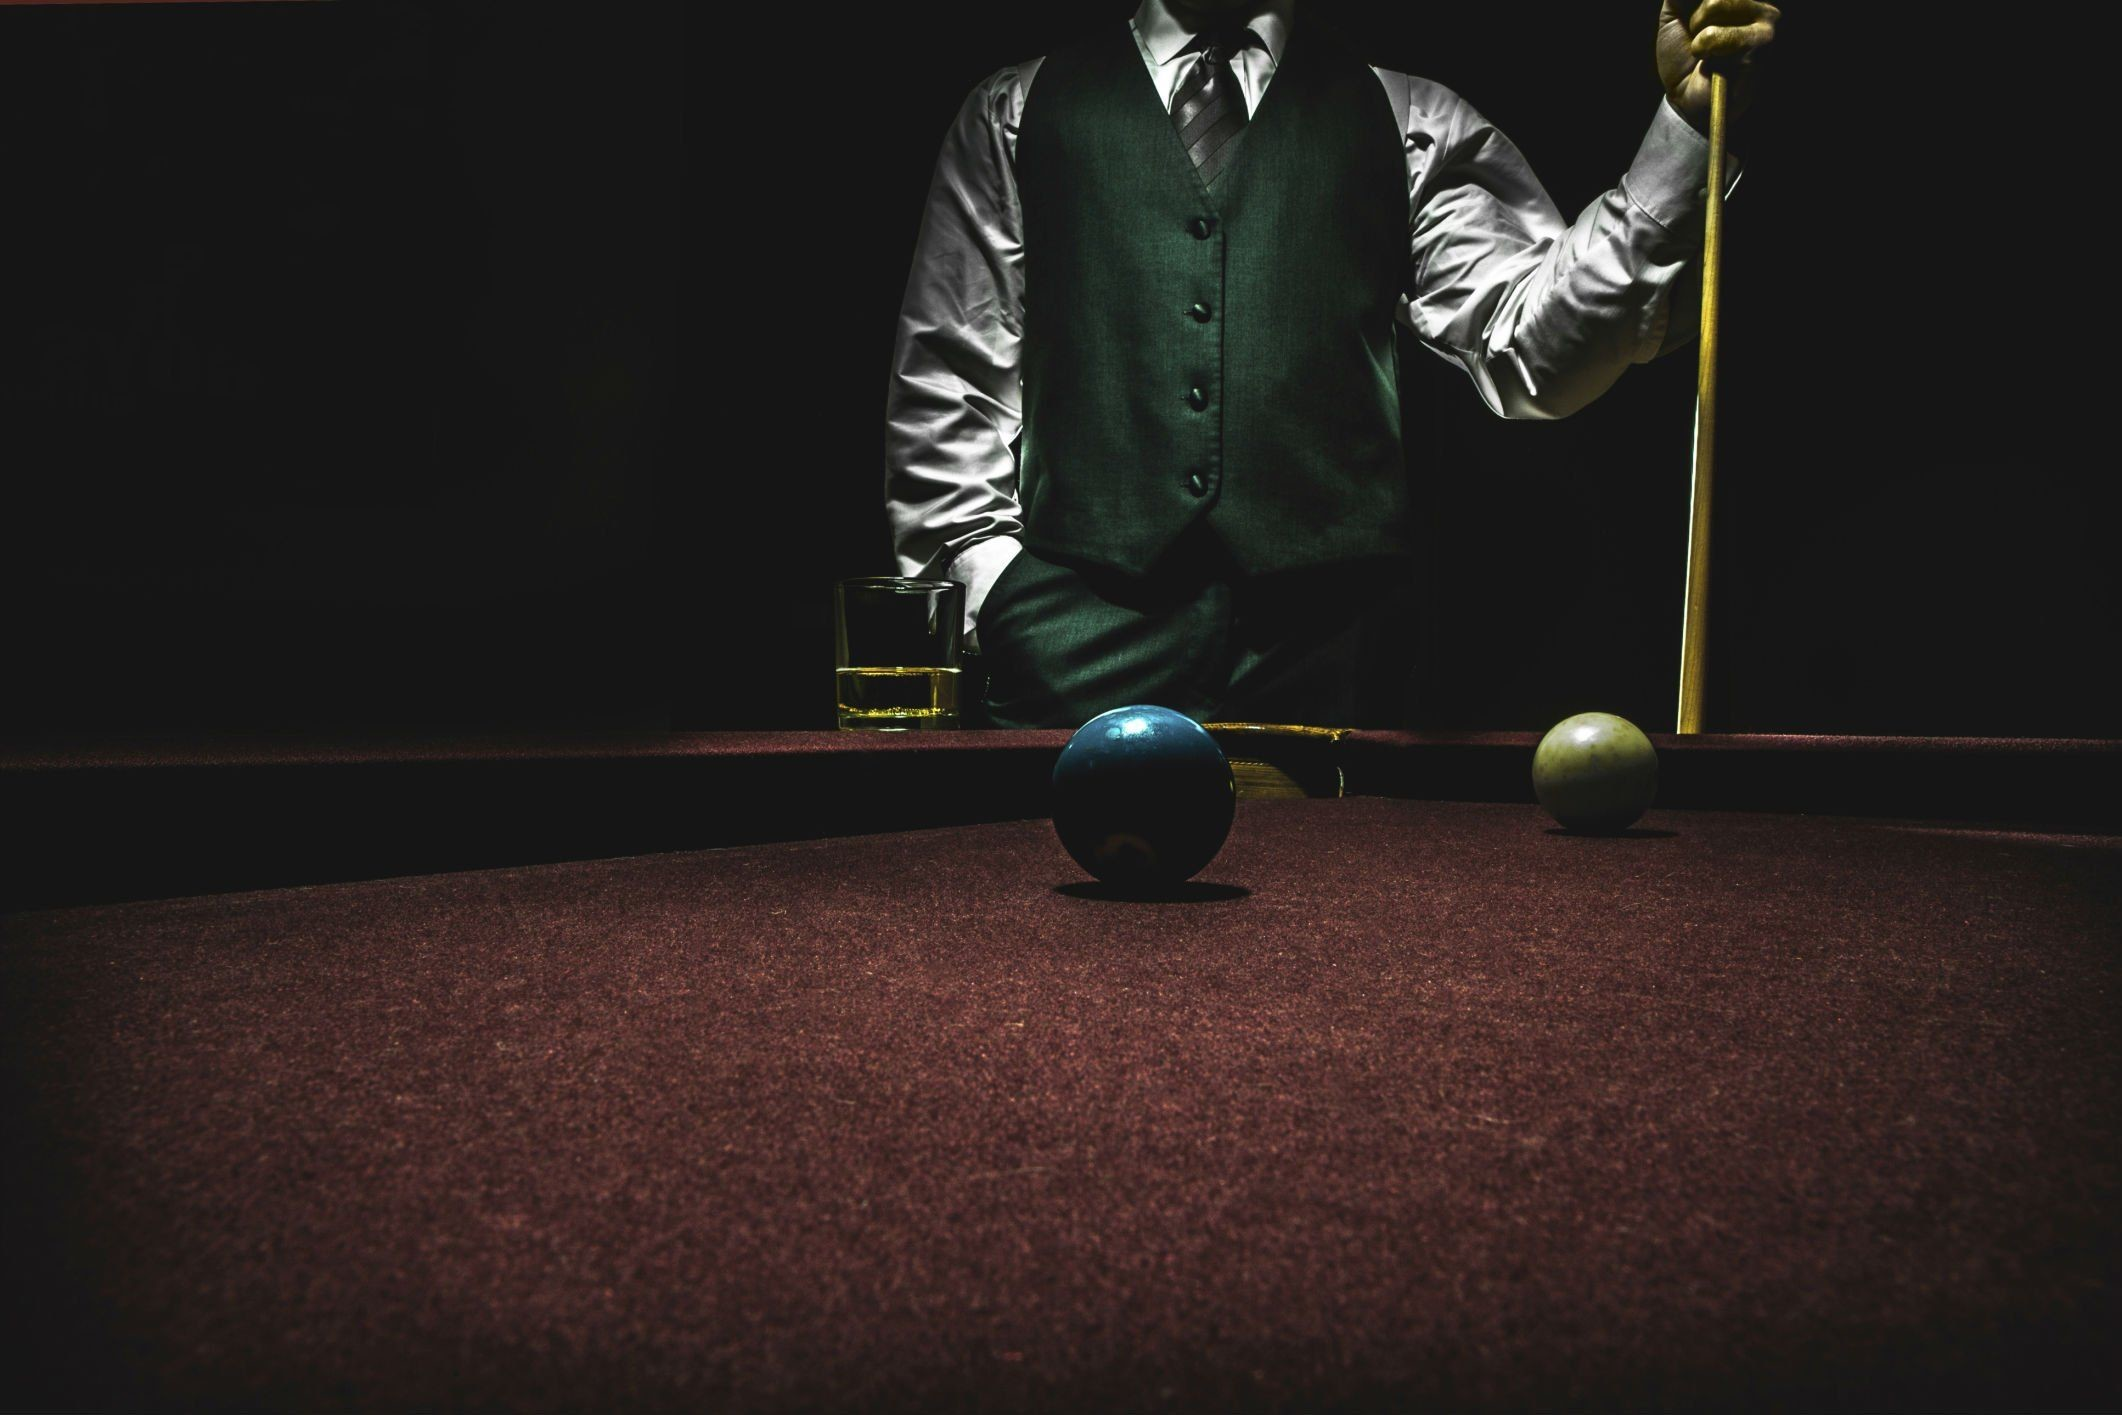 57 Billiards Wallpapers on WallpaperPlay 2122x1415